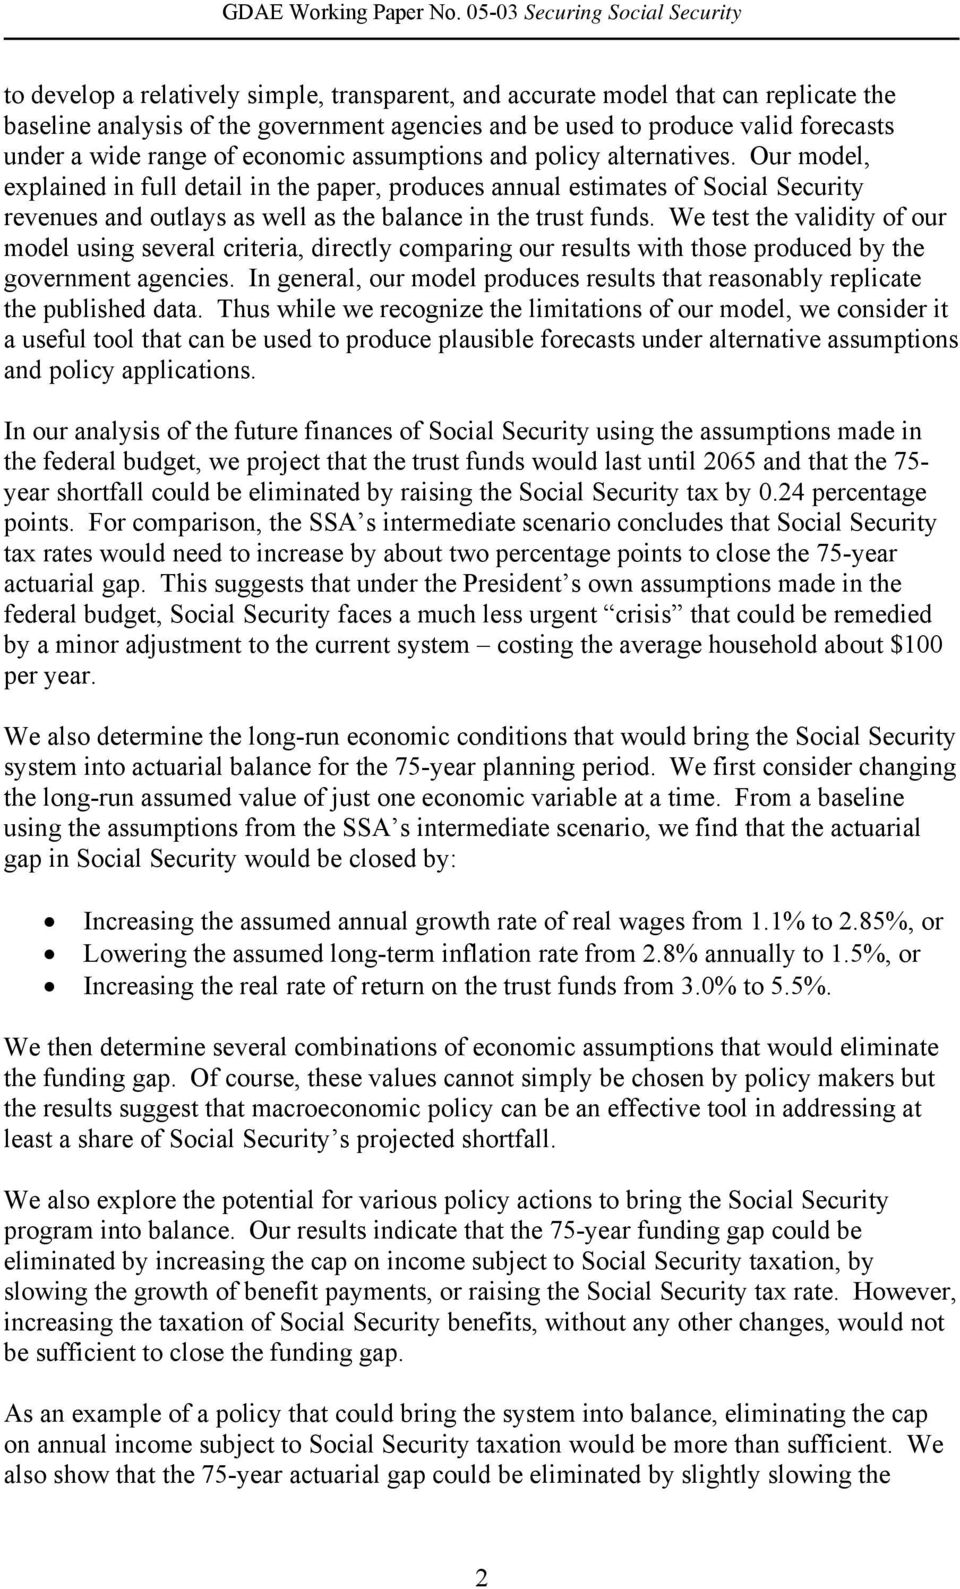 Our model, explained in full detail in the paper, produces annual estimates of Social Security revenues and outlays as well as the balance in the trust funds.